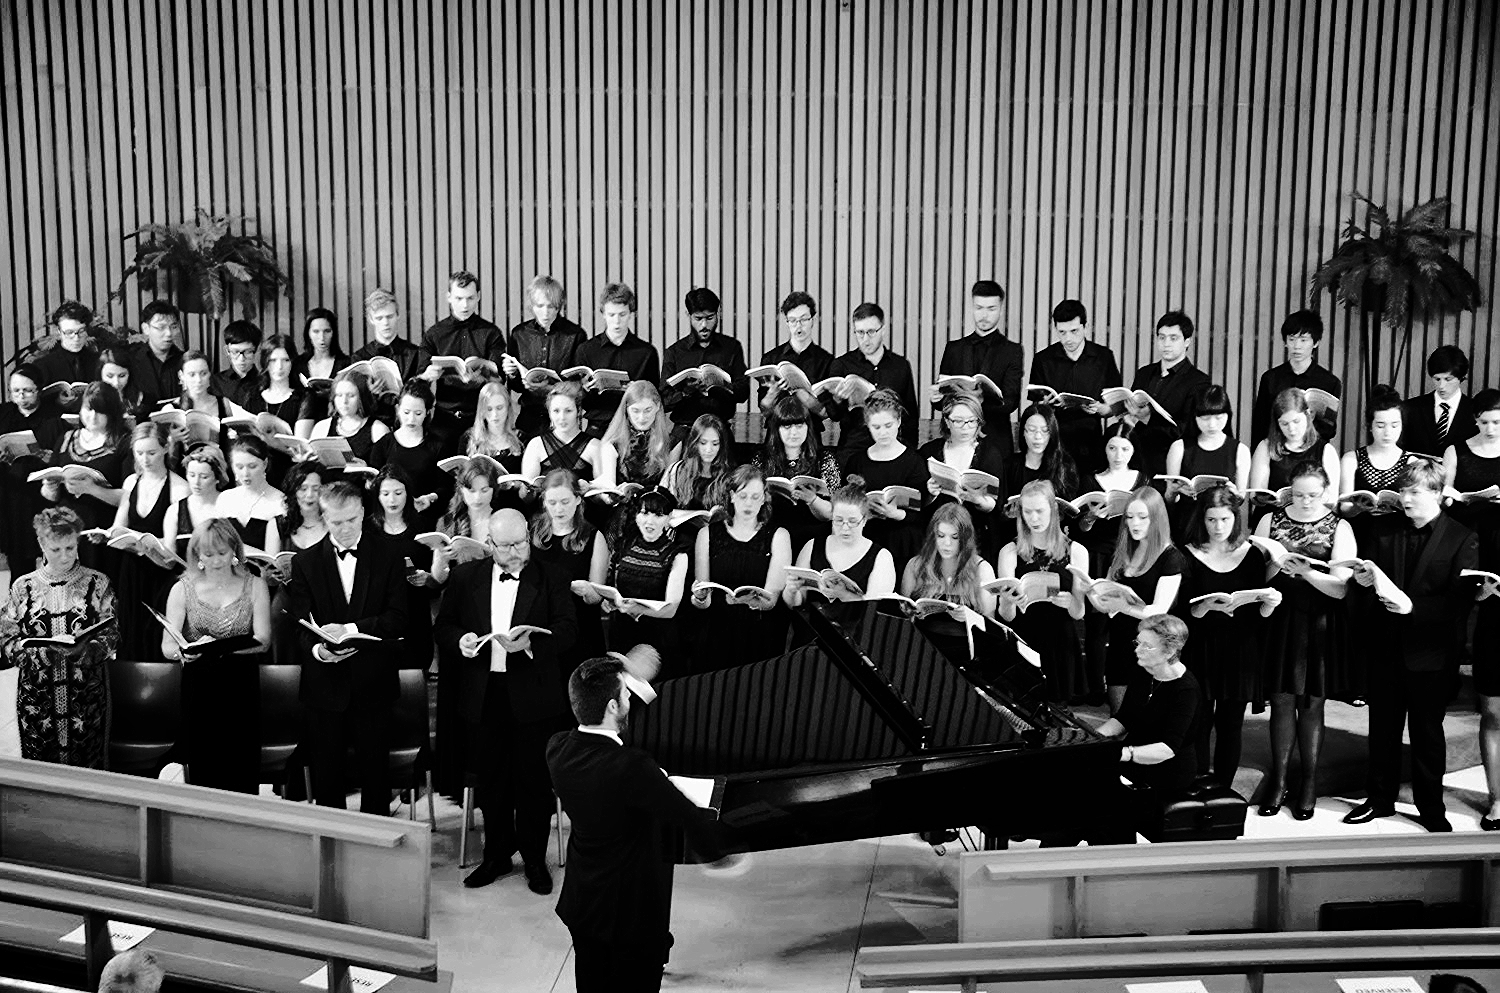 Dvorak Stabat Mater in concert with Monash University Singers